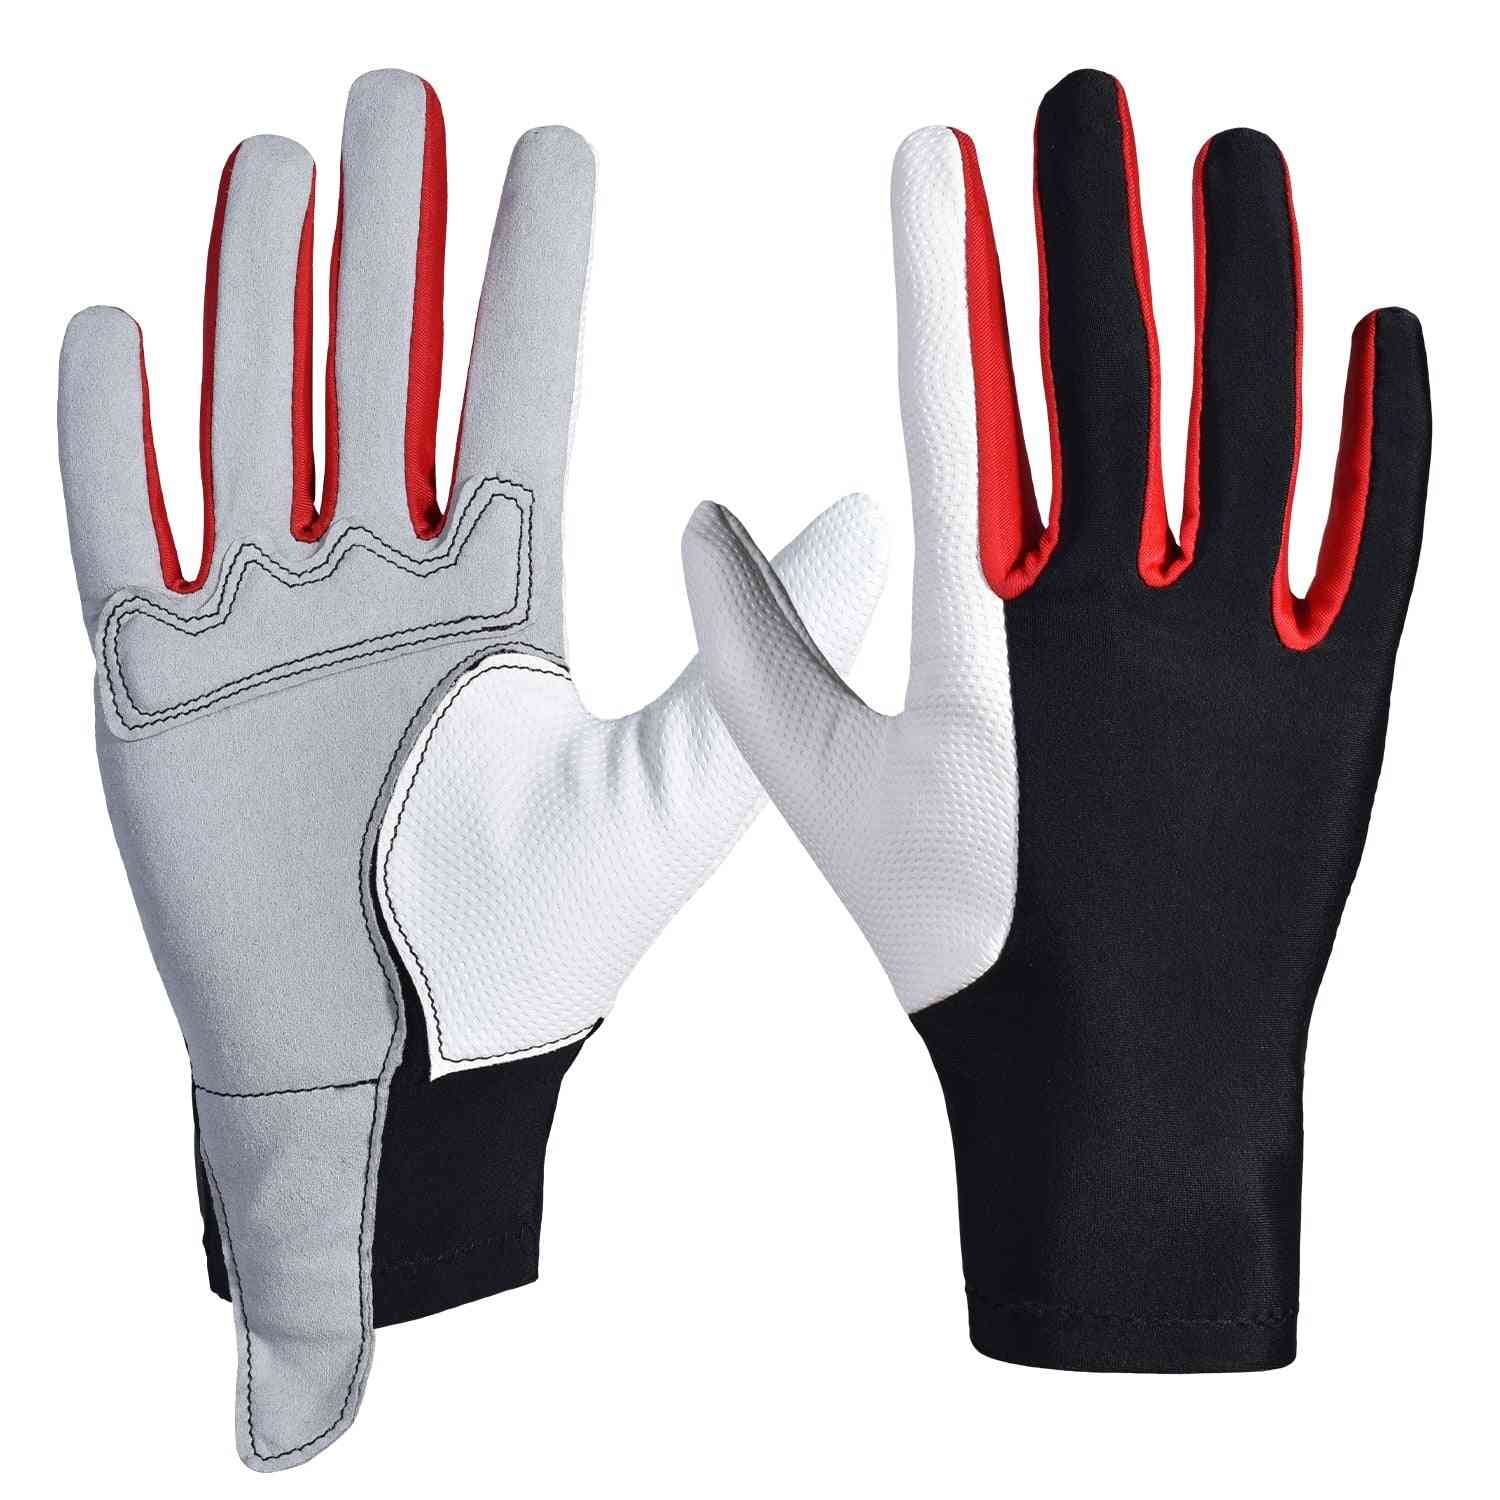 Professional Horse Riding Equestrian Gloves